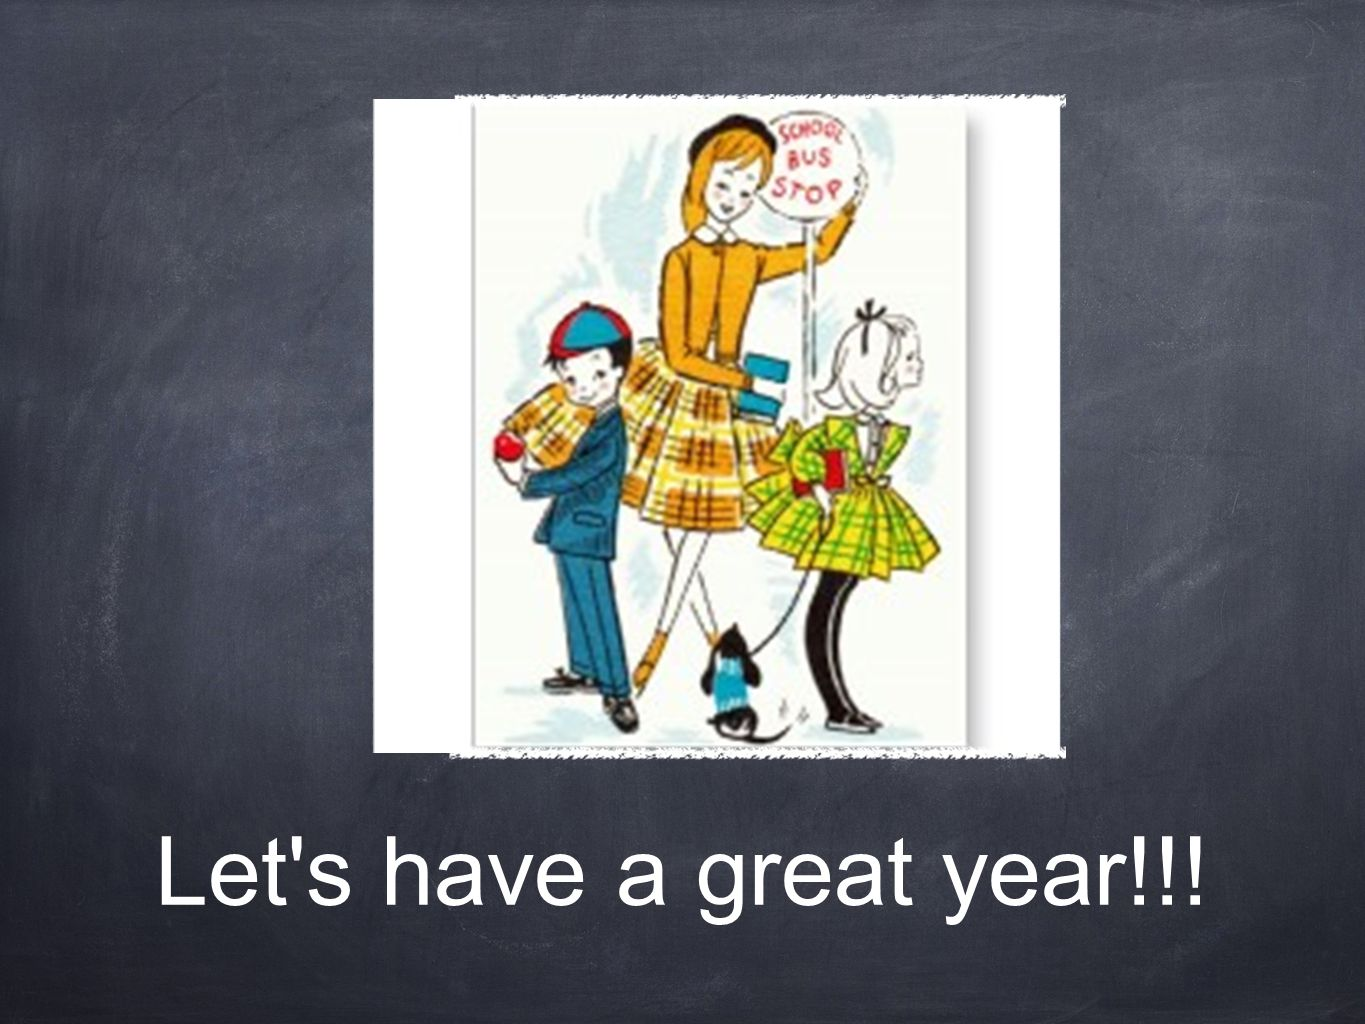 Let s have a great year!!!